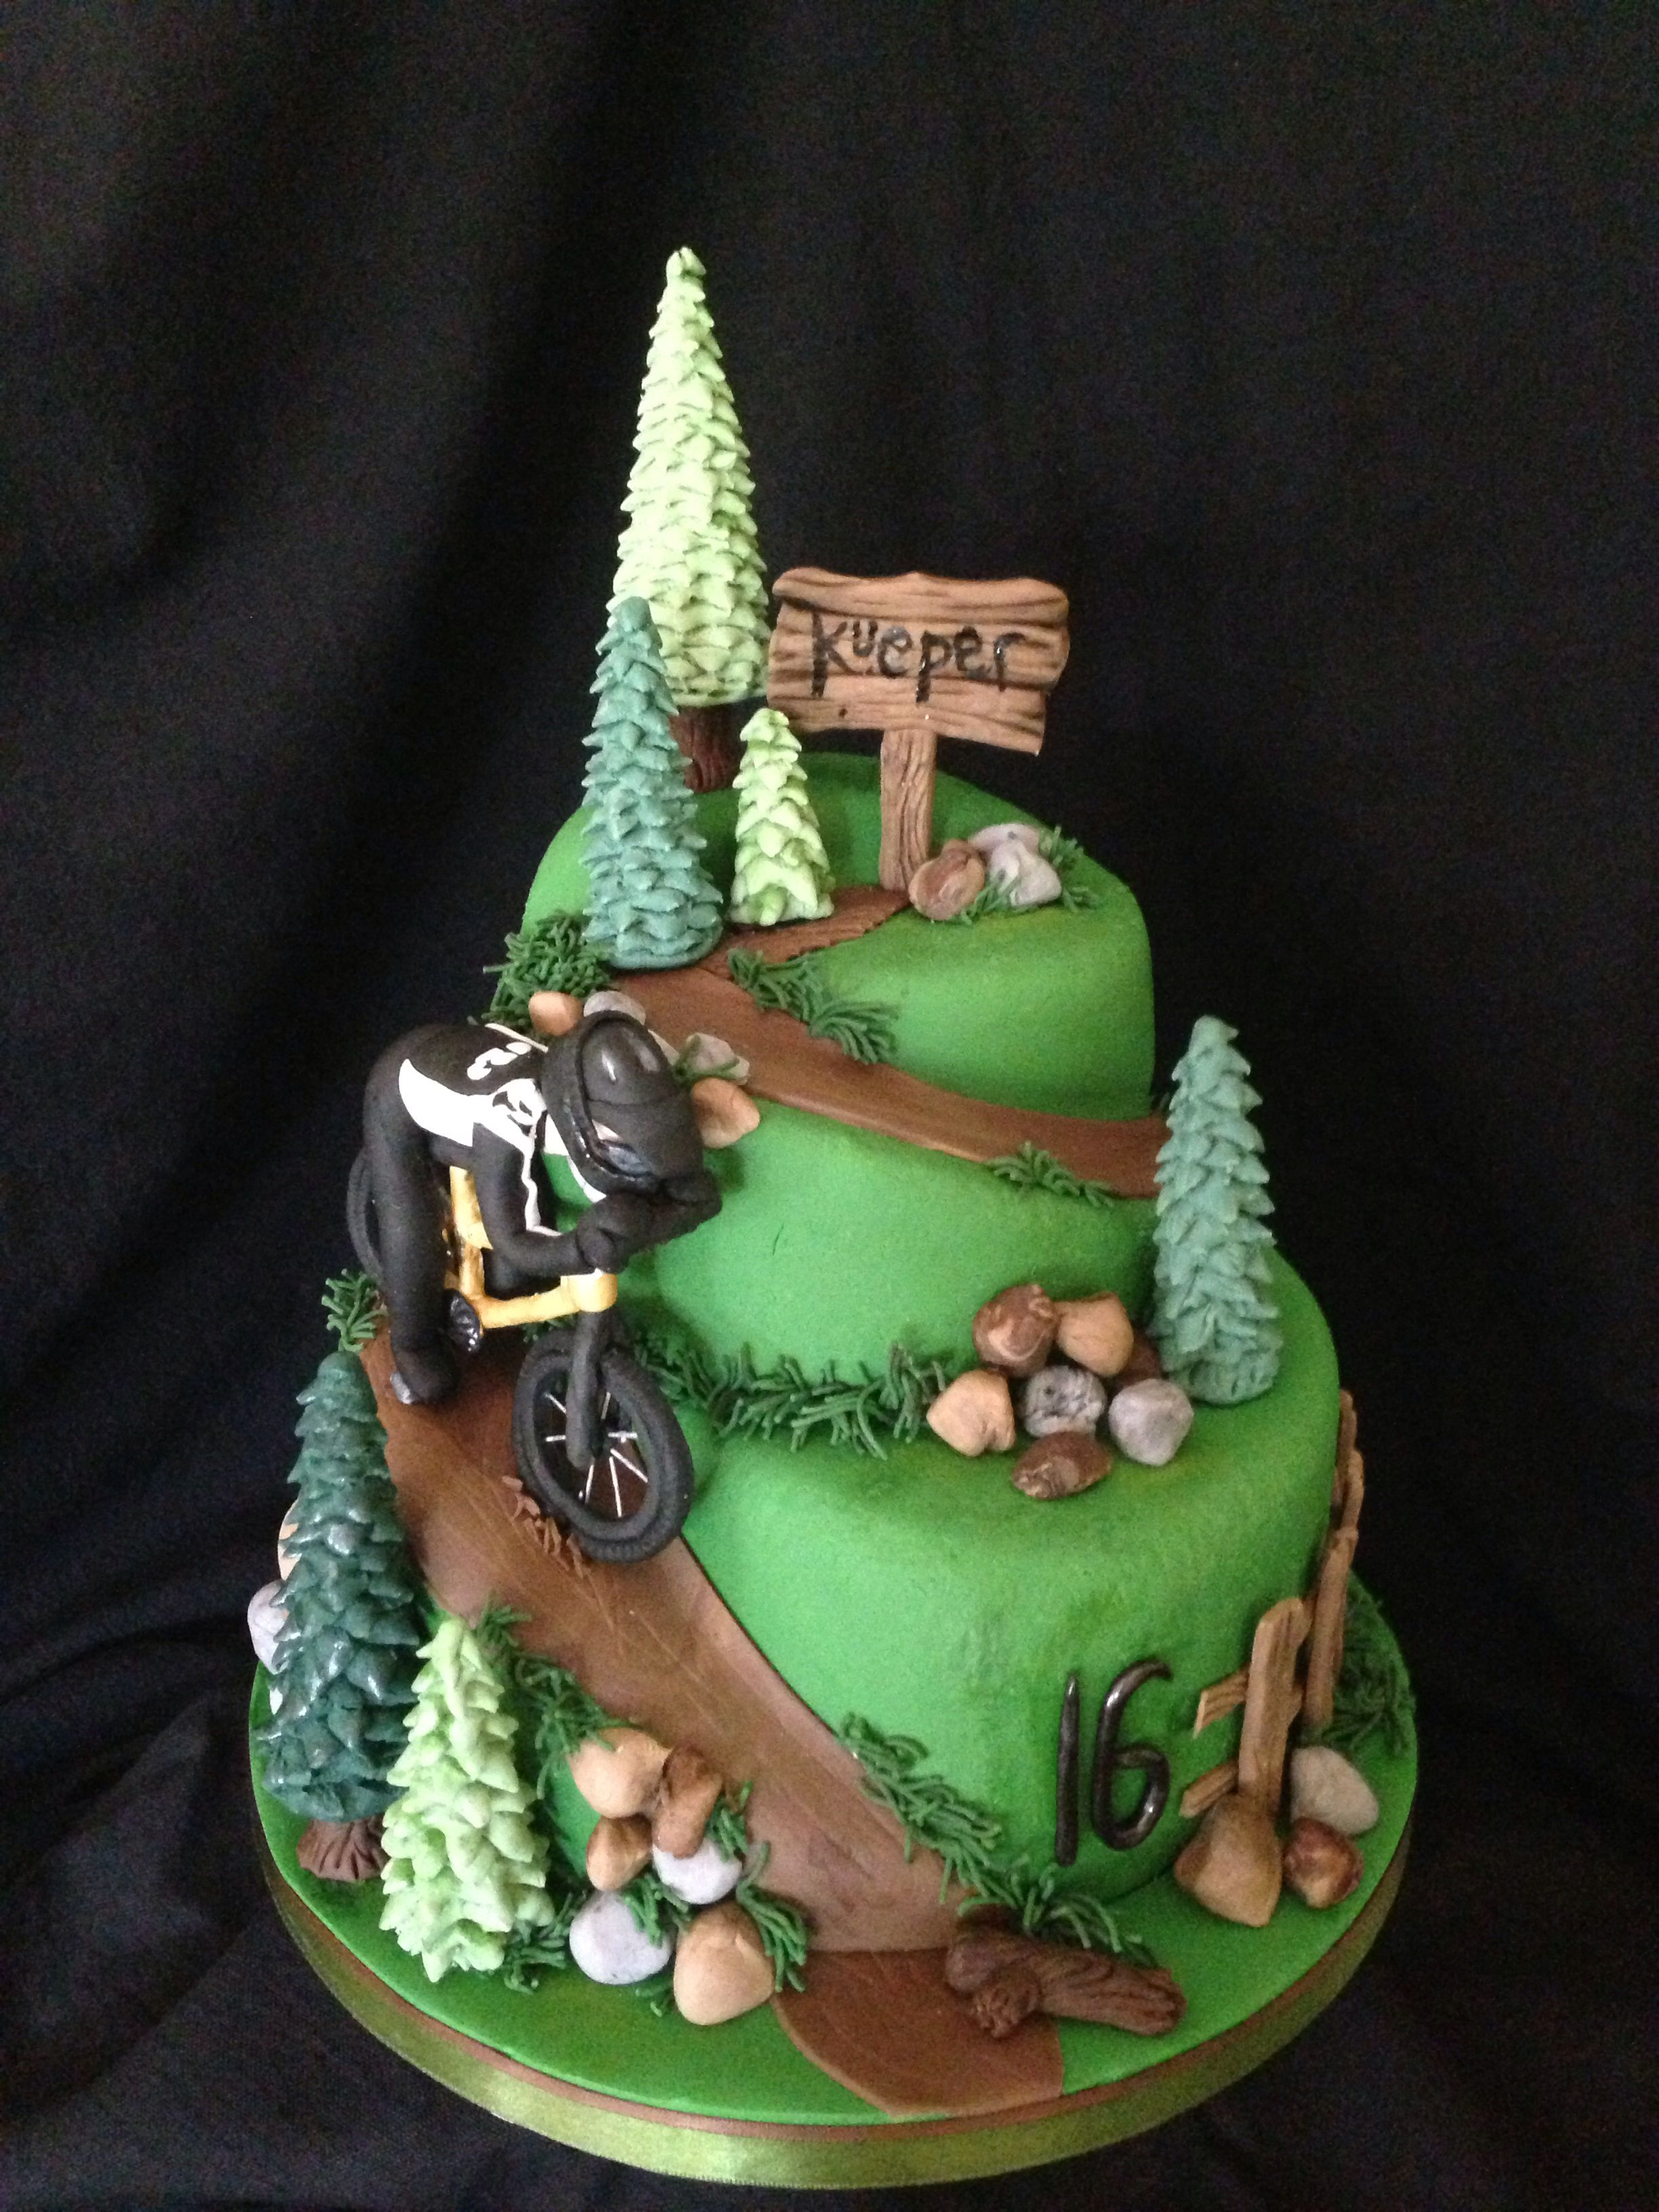 Mountain Bikers Cake Our Sister Company Sticky Face Cakes Created